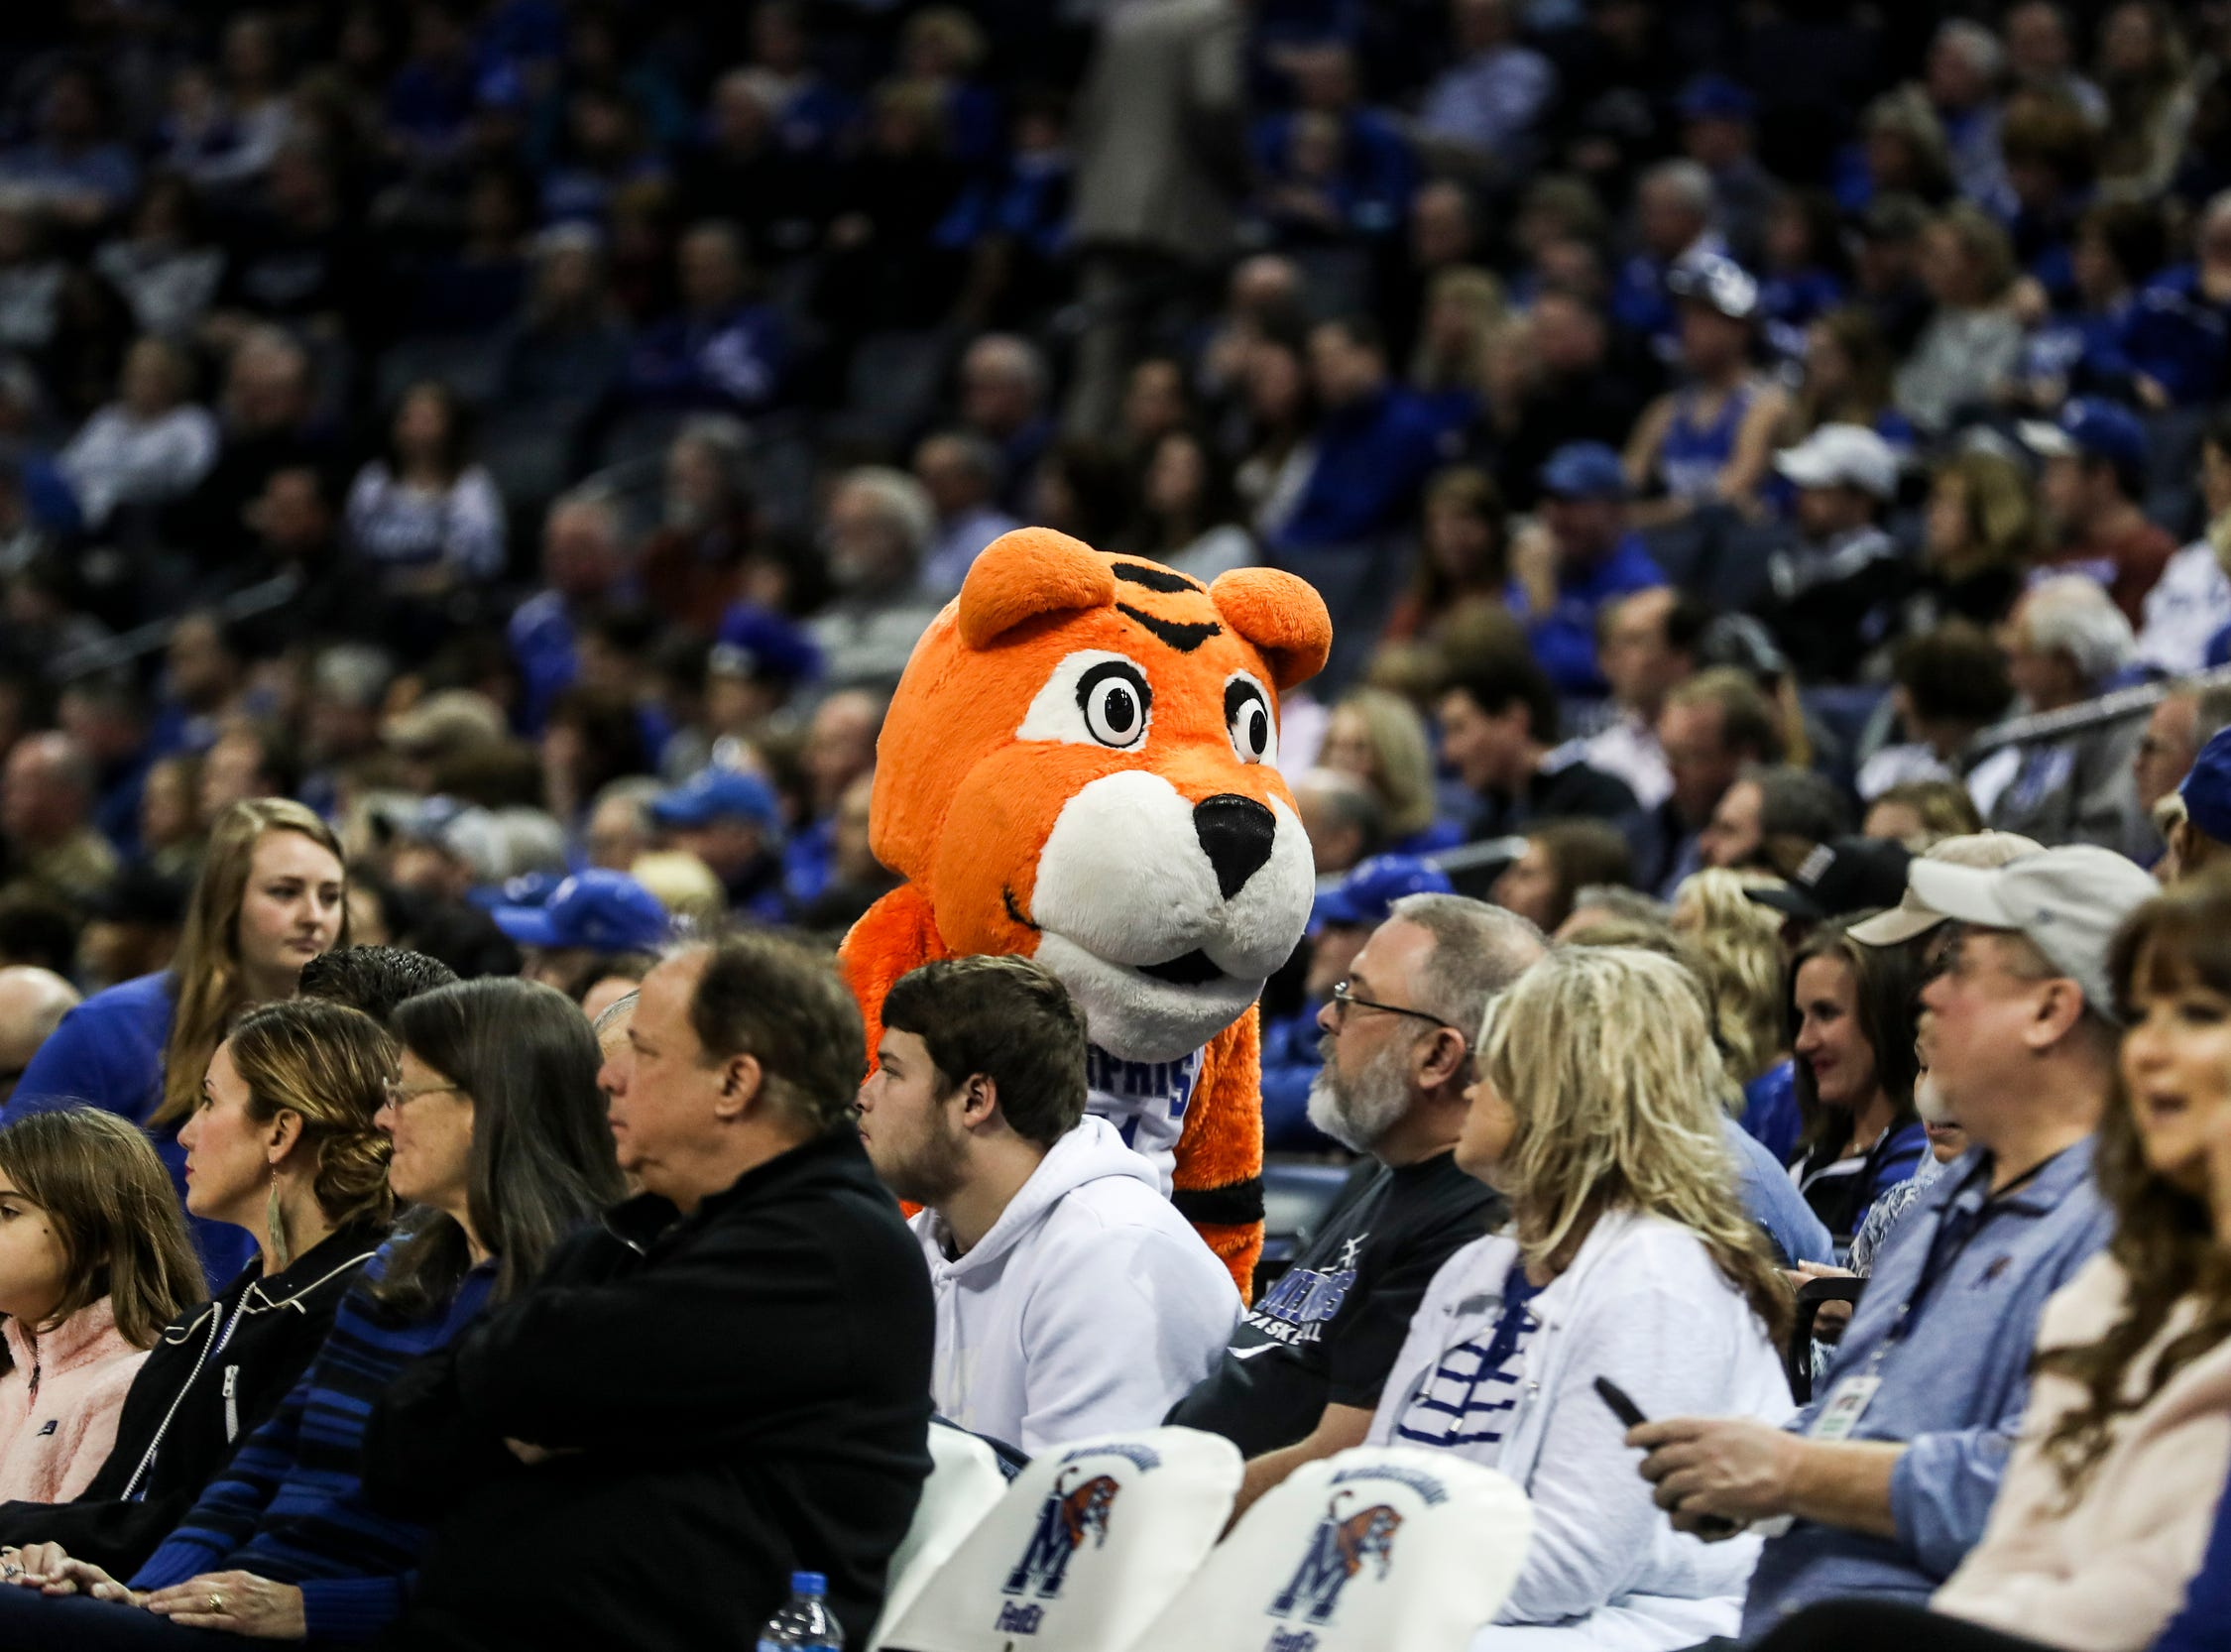 February 10, 2019 - Pouncer is seen during Sunday's game versus Connecticut at the FedExForum.